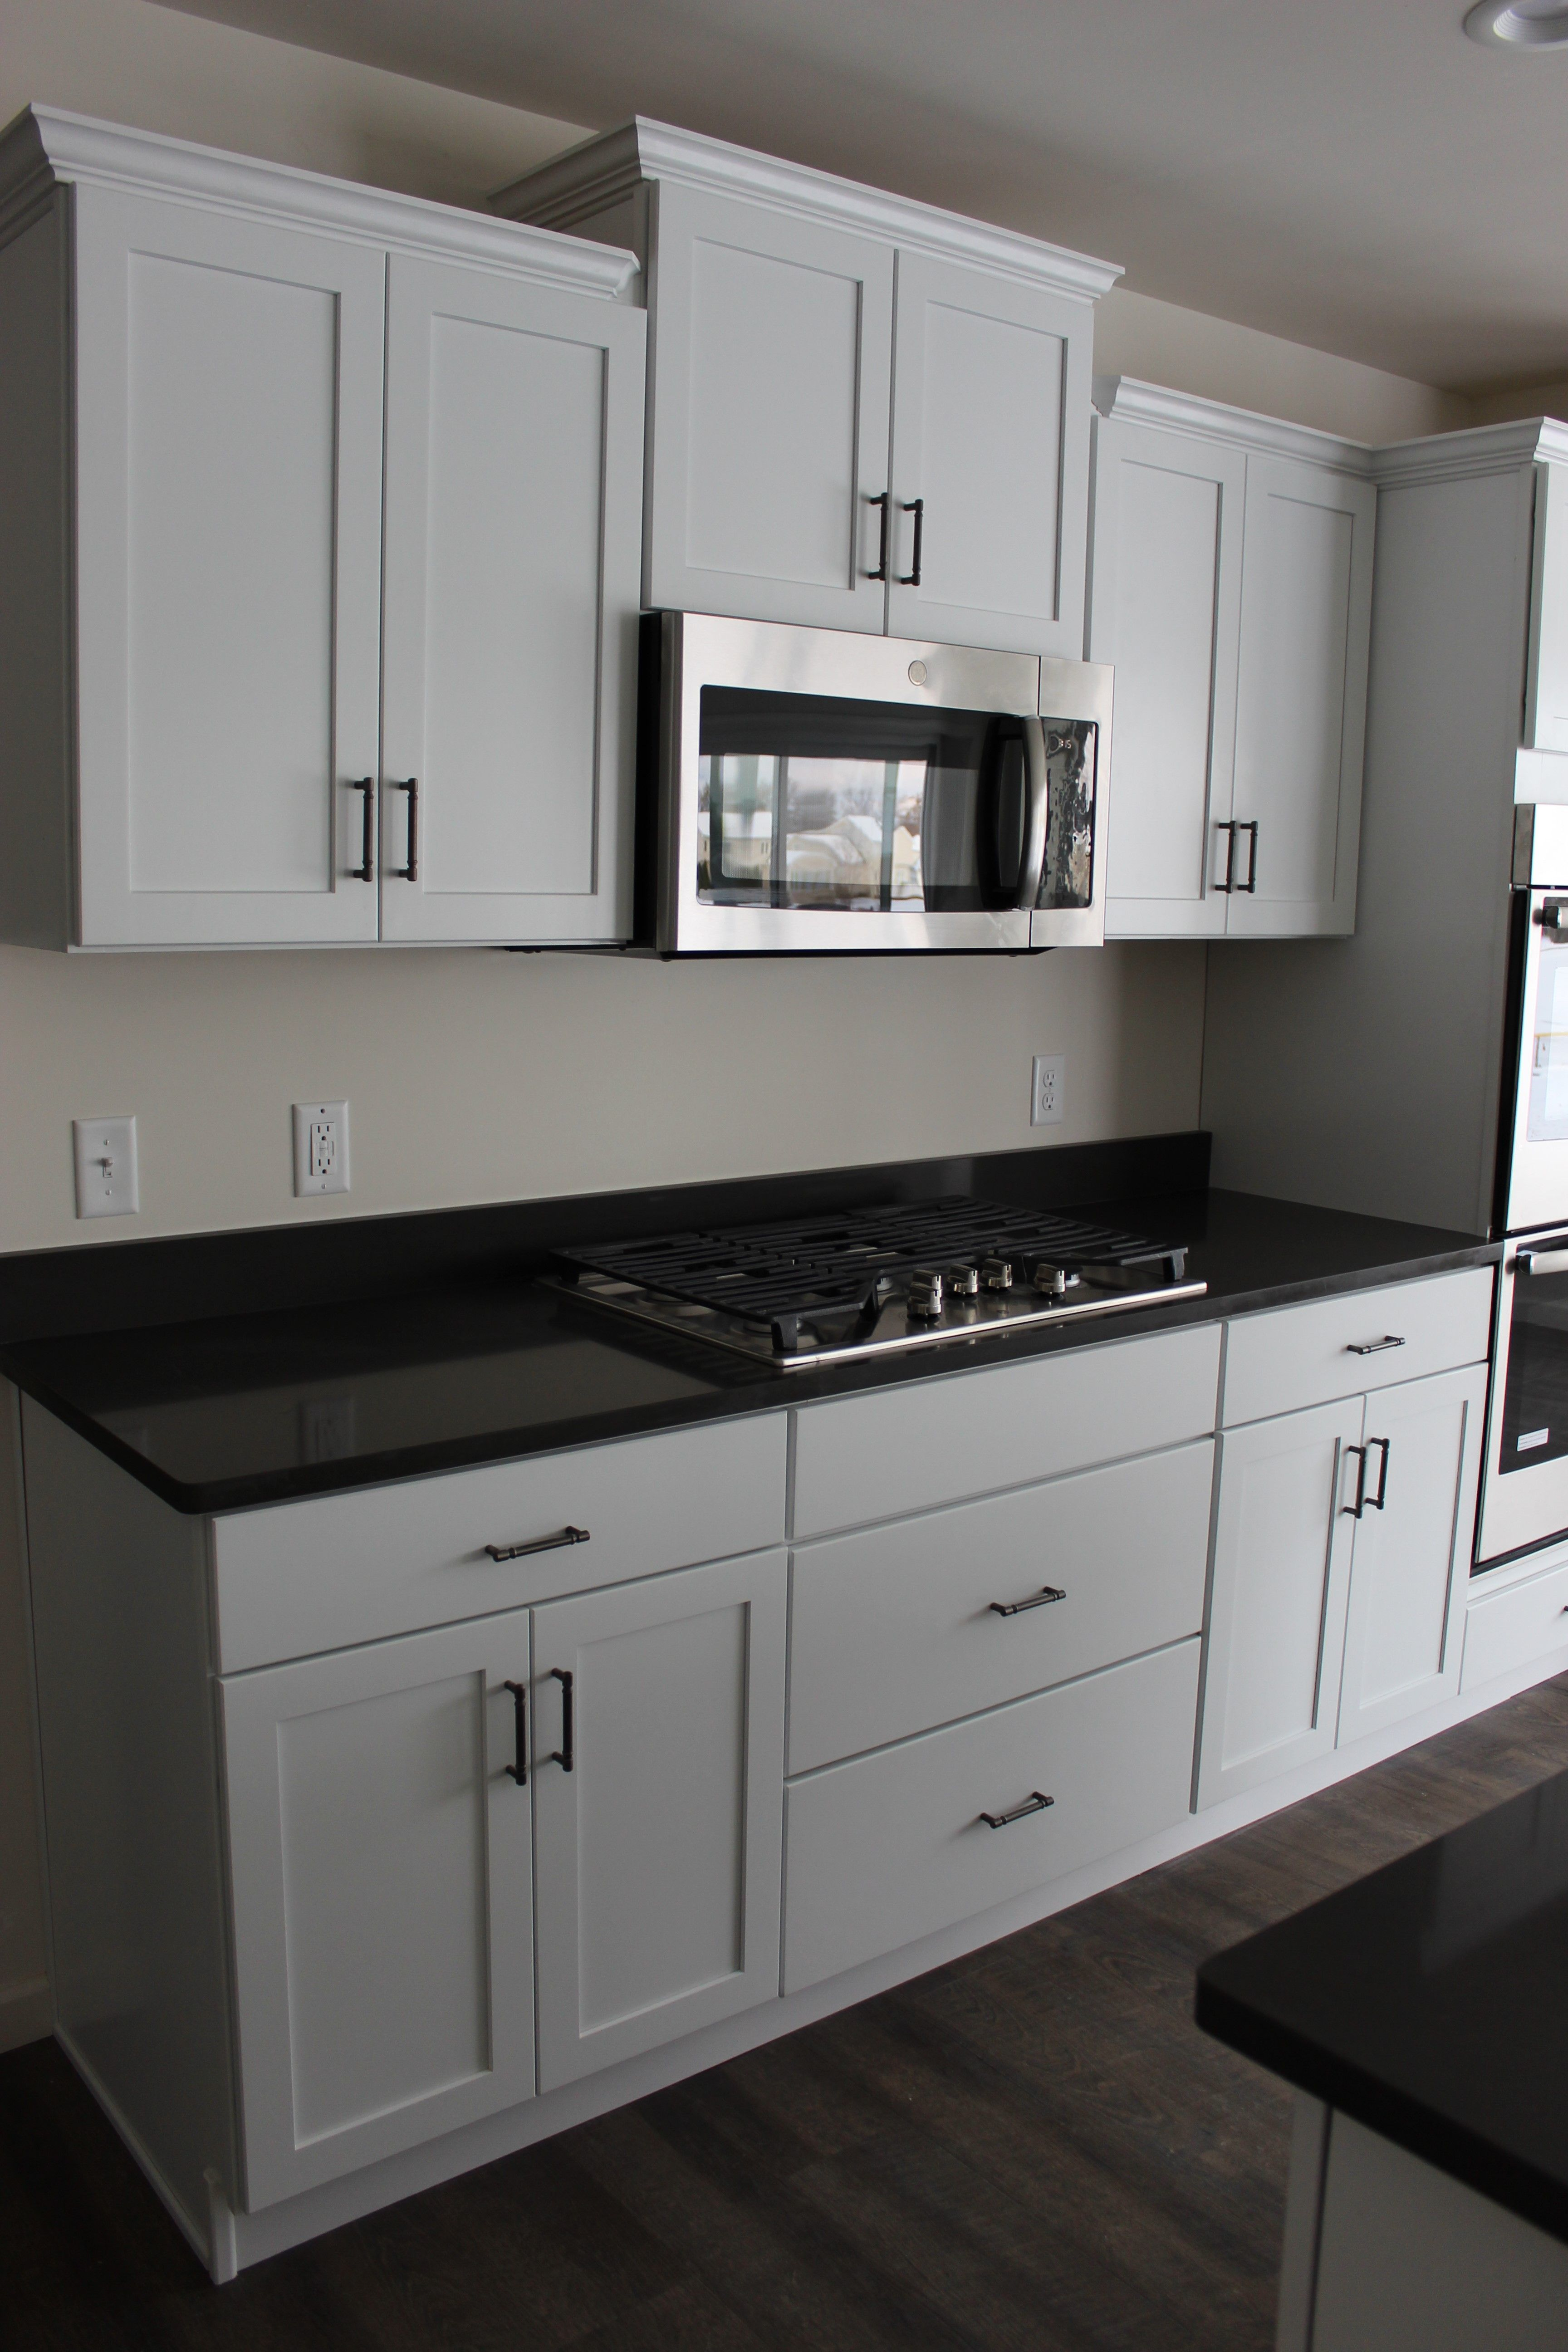 another beautiful farmhouse inspired kitchen with white cabinets and black countertops so eleg on kitchen decor black countertop id=77785